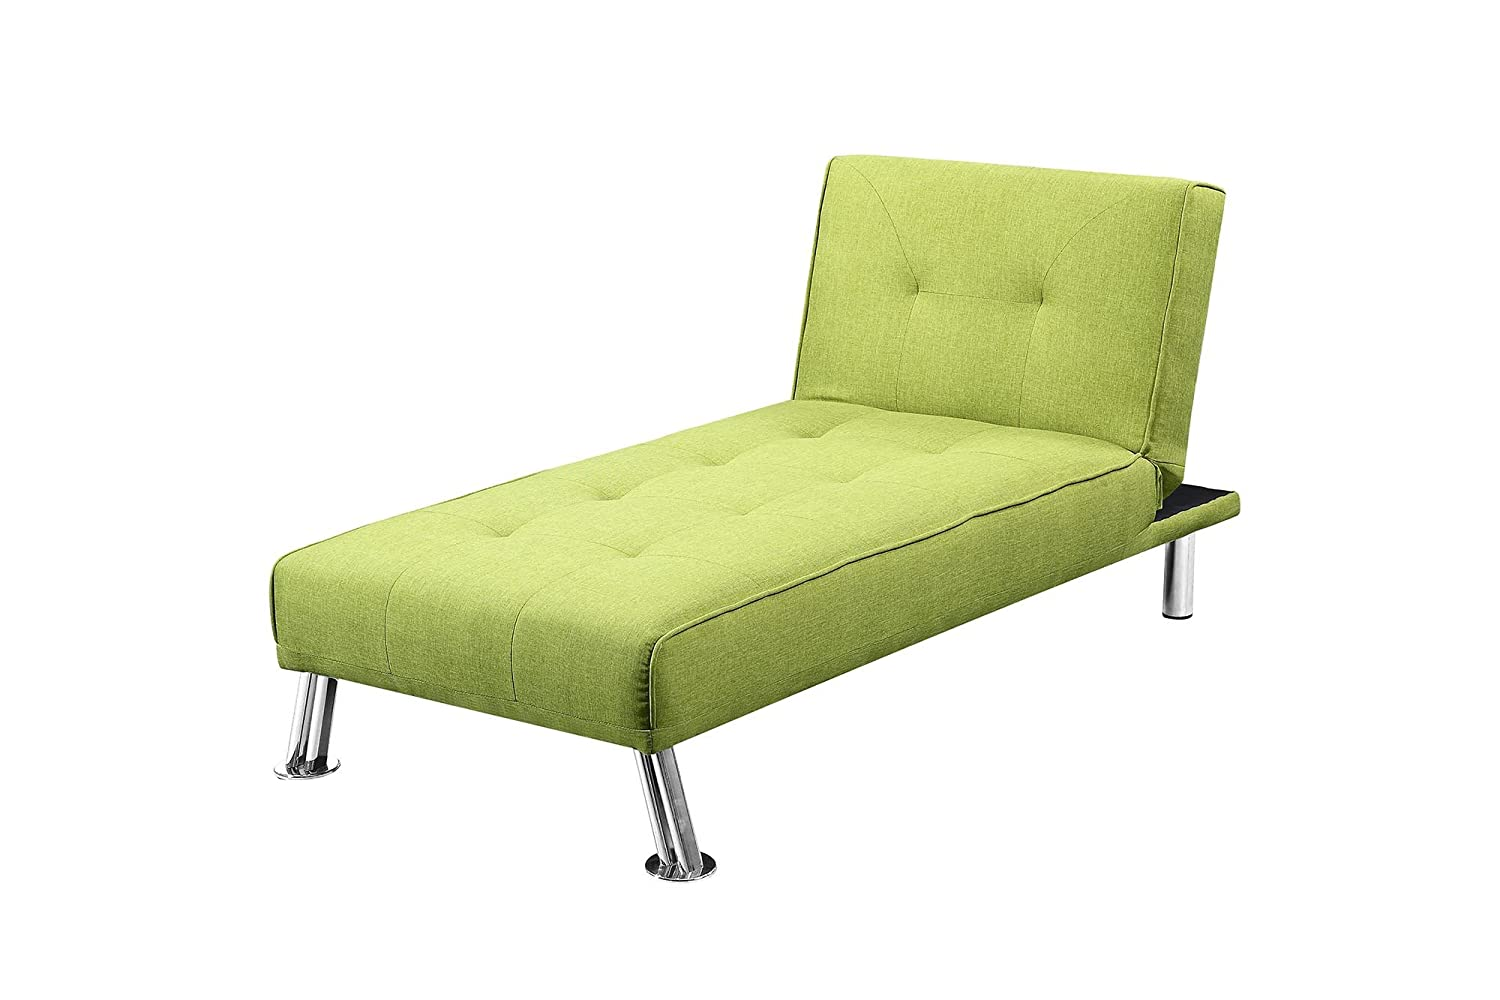 New York 3 4 Seater Corner L Shaped Fabric Sofa Bed Chaise Longue Green Amazoncouk Kitchen Home